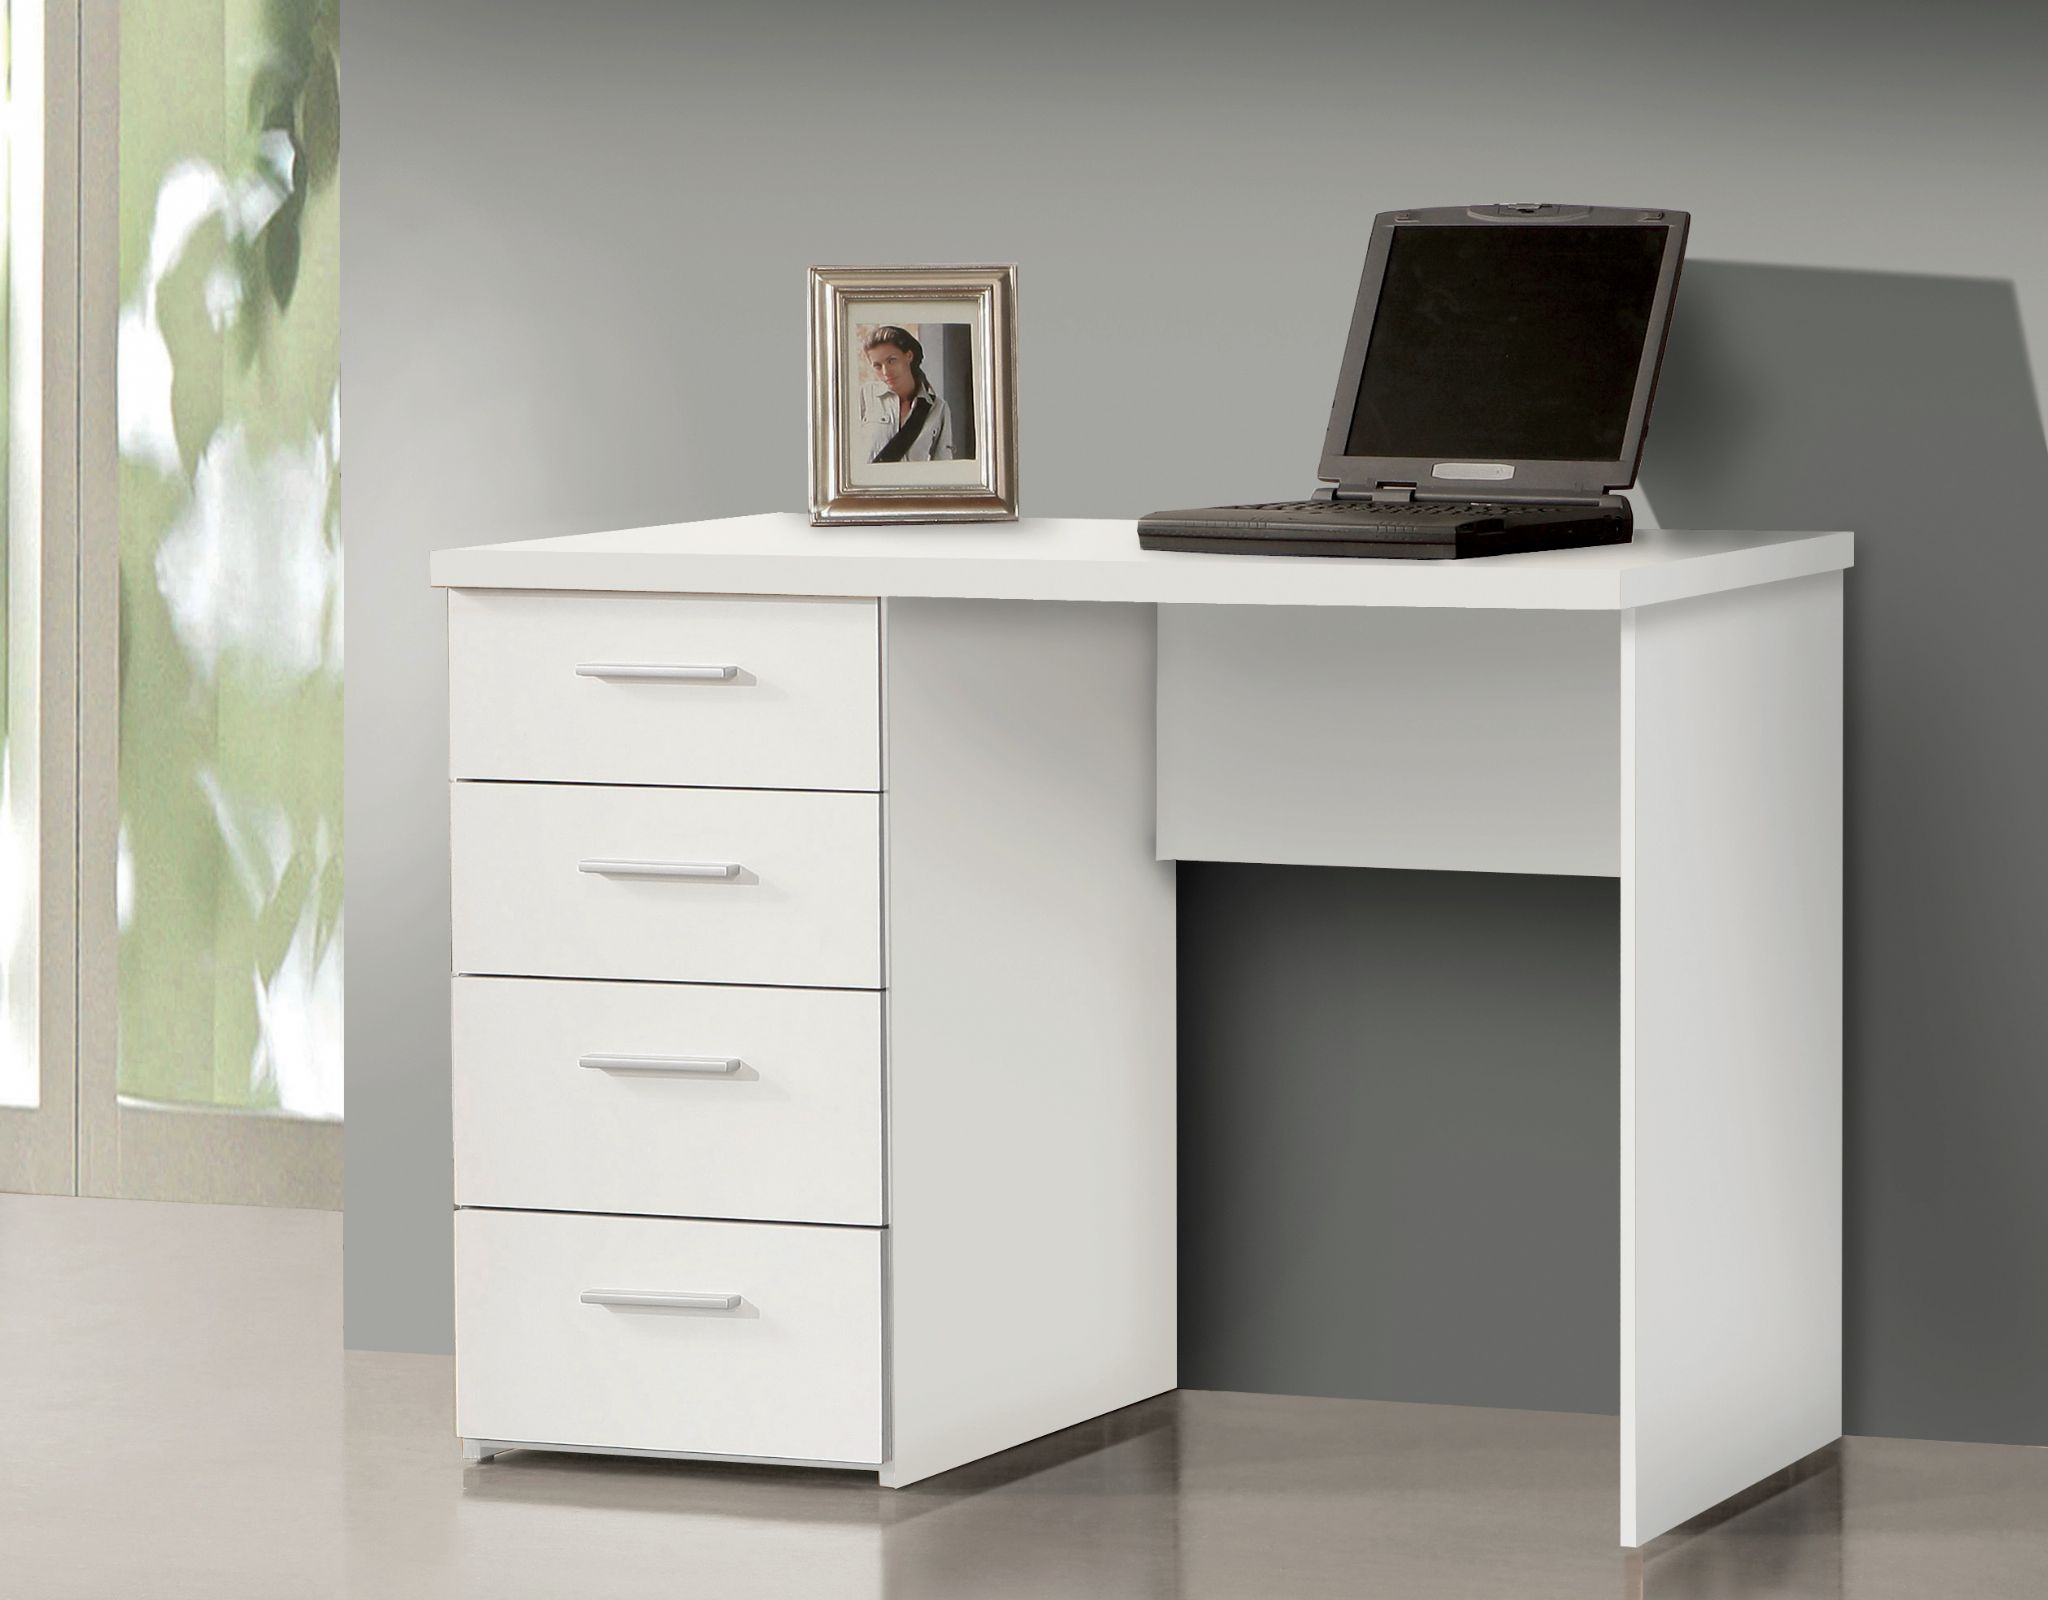 Attrayant Pulton Small White Desk With Drawers MT935